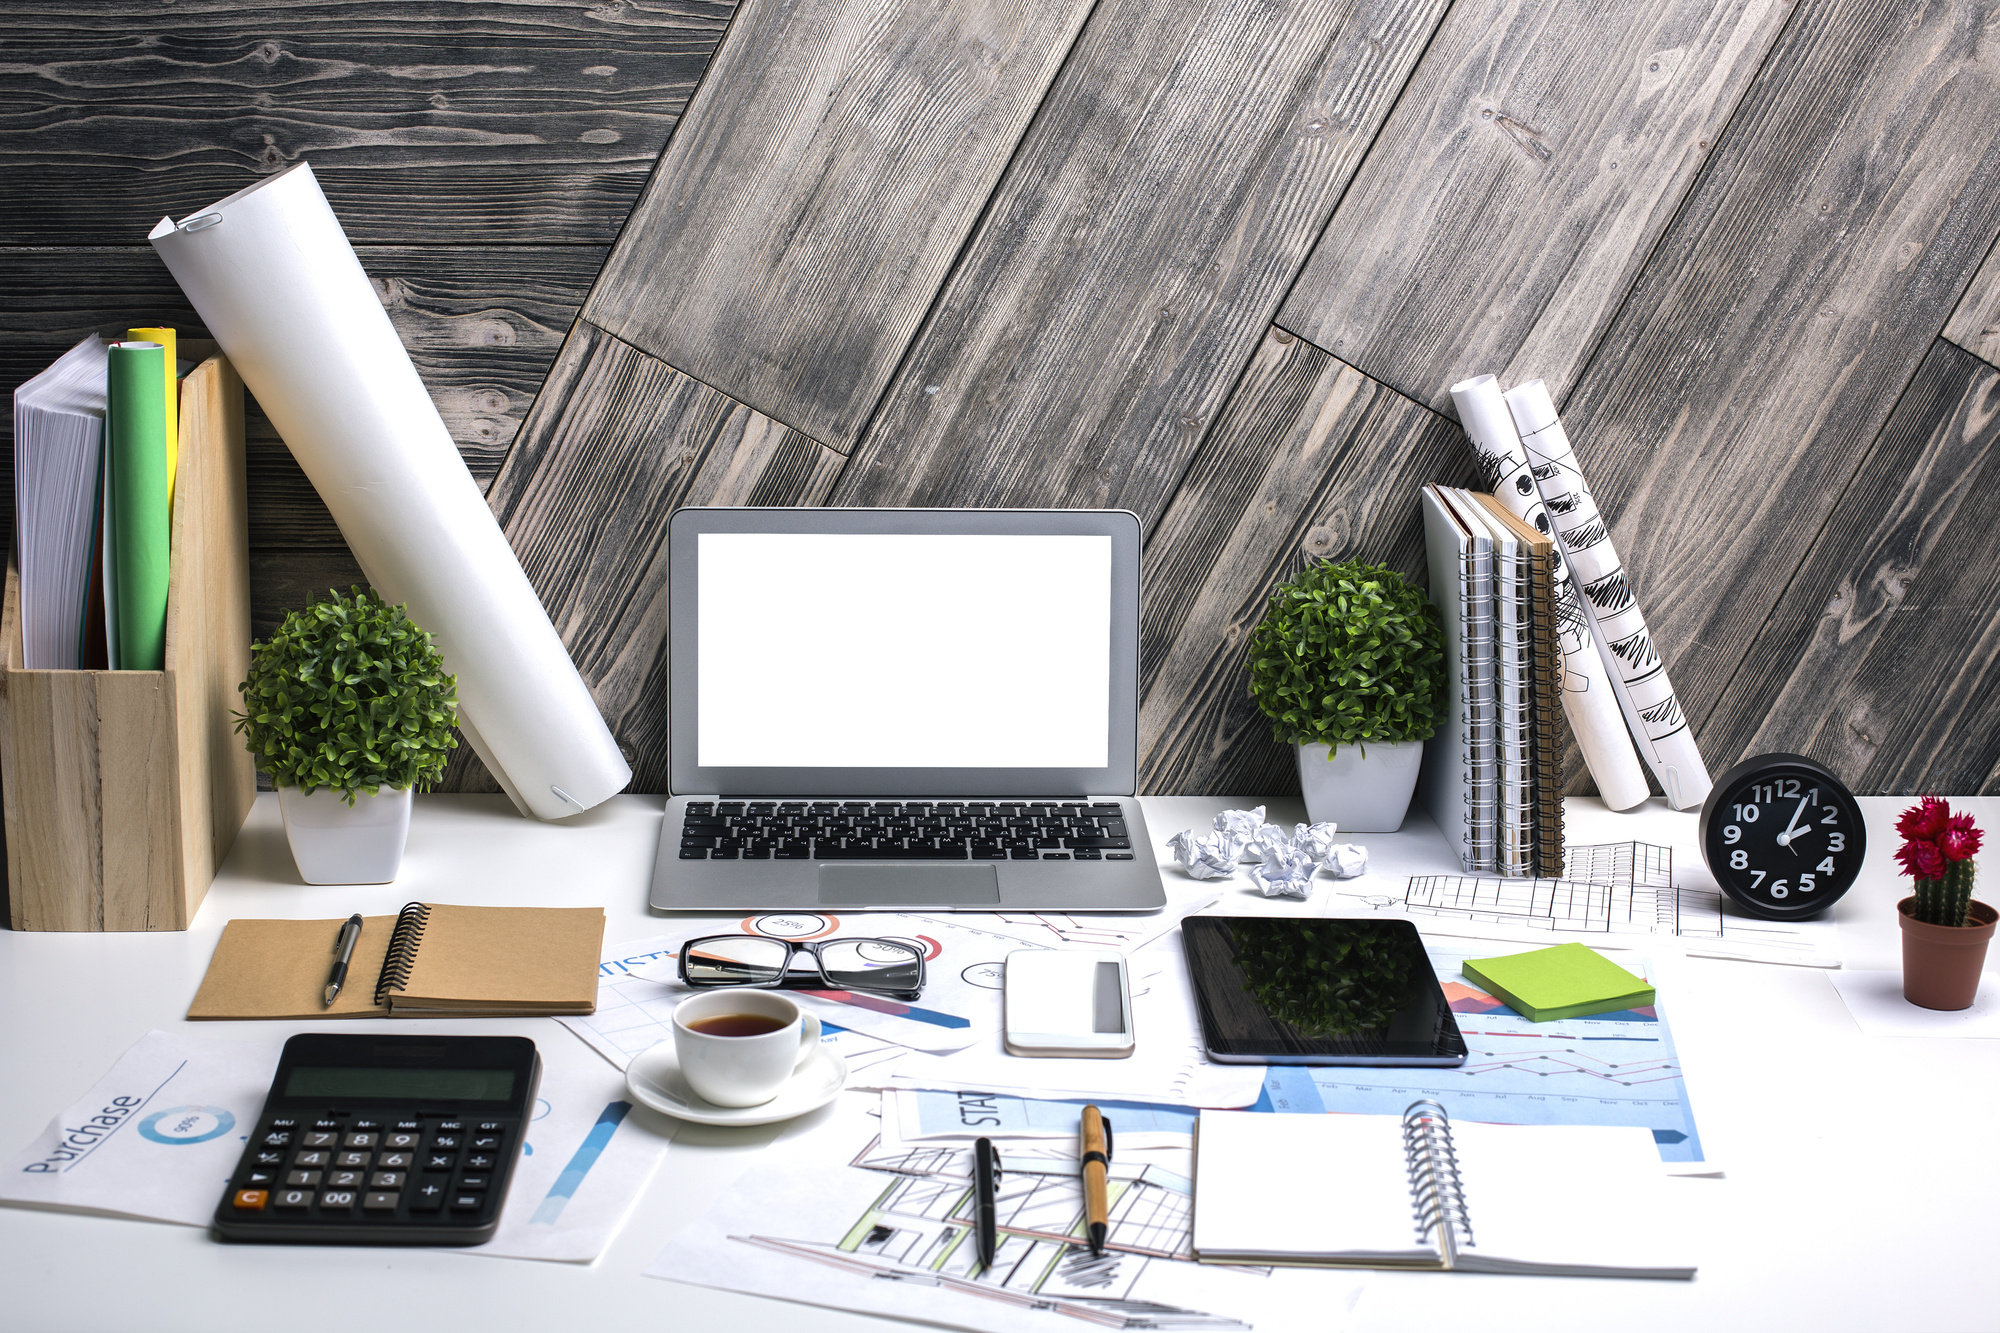 Essential Office Supplies for a New Business